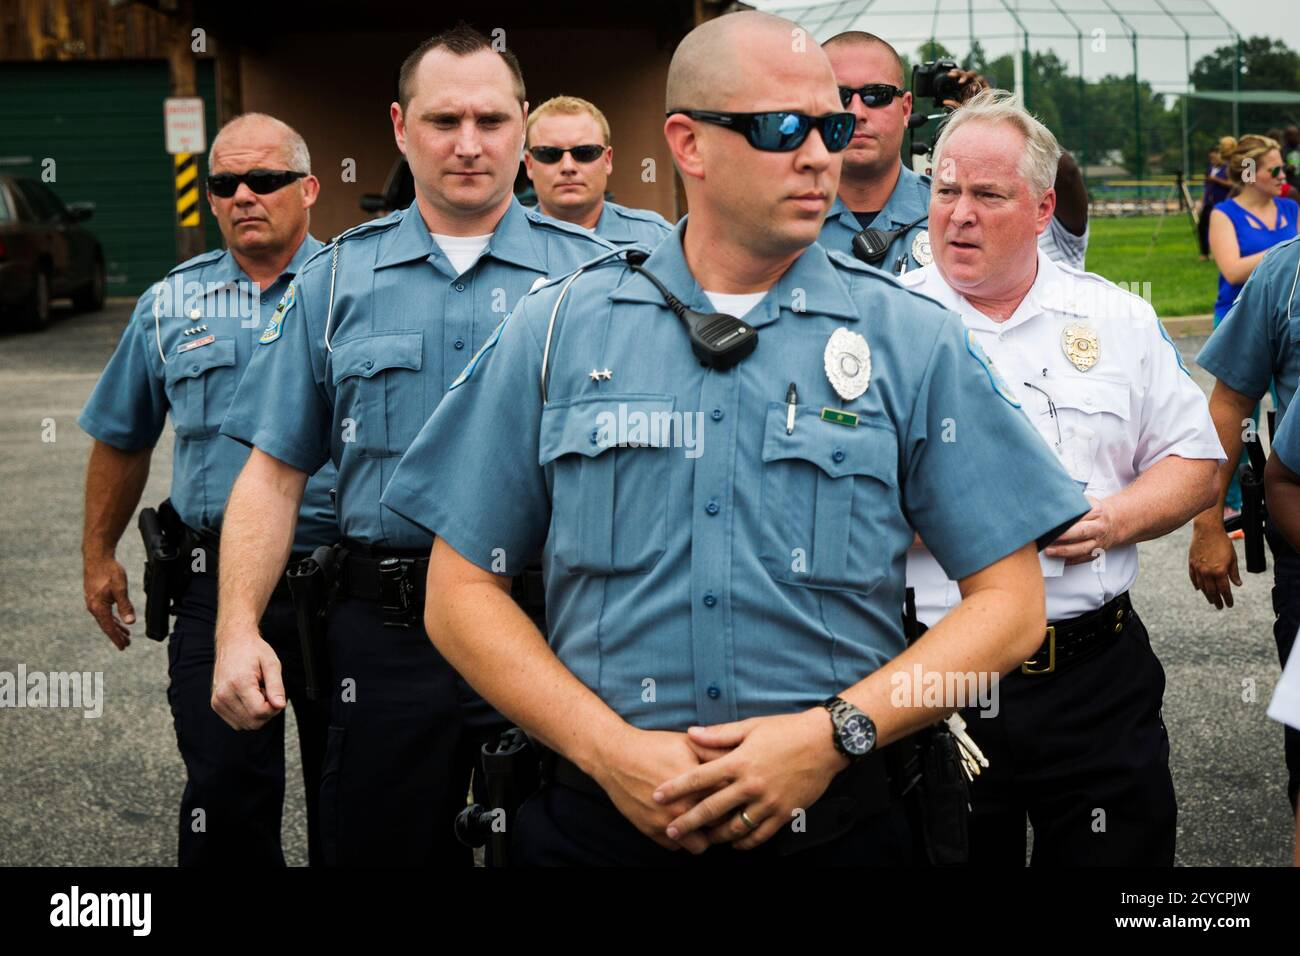 Ferguson Police Chief Thomas Jackson (R) walks away from a media availability regarding his office's handling of the release of information following the shooting of Michael Brown in Ferguson, Missouri August 15, 2014. Picture taken August 15, 2014.  REUTERS/Lucas Jackson (UNITED STATES - Tags: CIVIL UNREST CRIME LAW POLITICS) Foto de stock